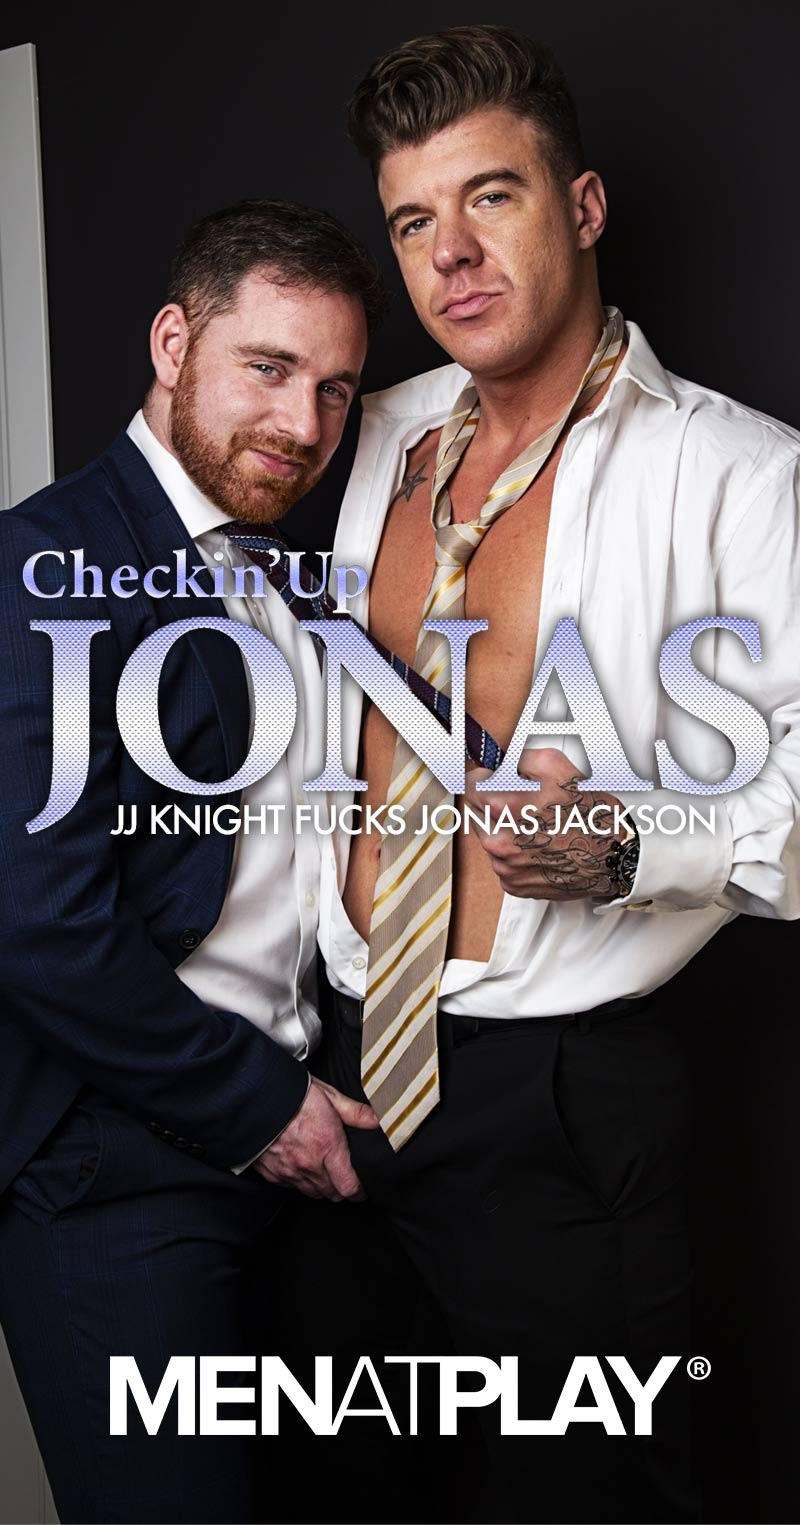 Checkin' Up Jonas (JJ Knight Fucks Jonas Jackson) on MenAtPlay